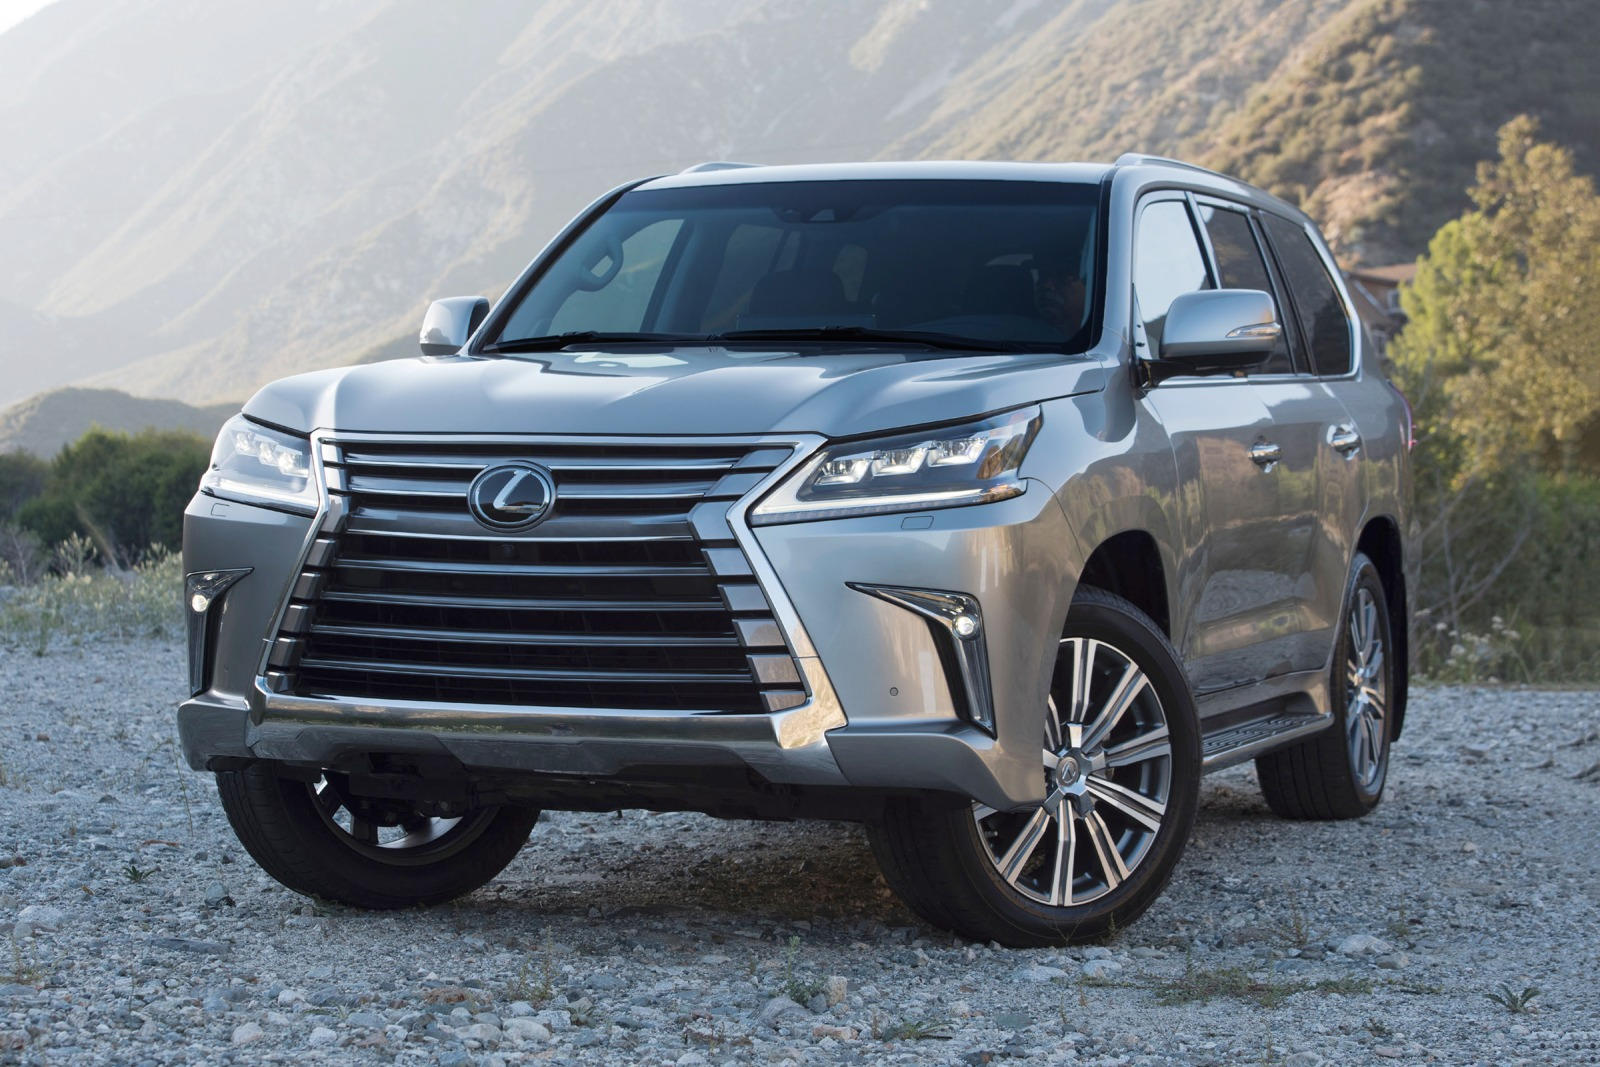 Lexus LX 570 Two Row